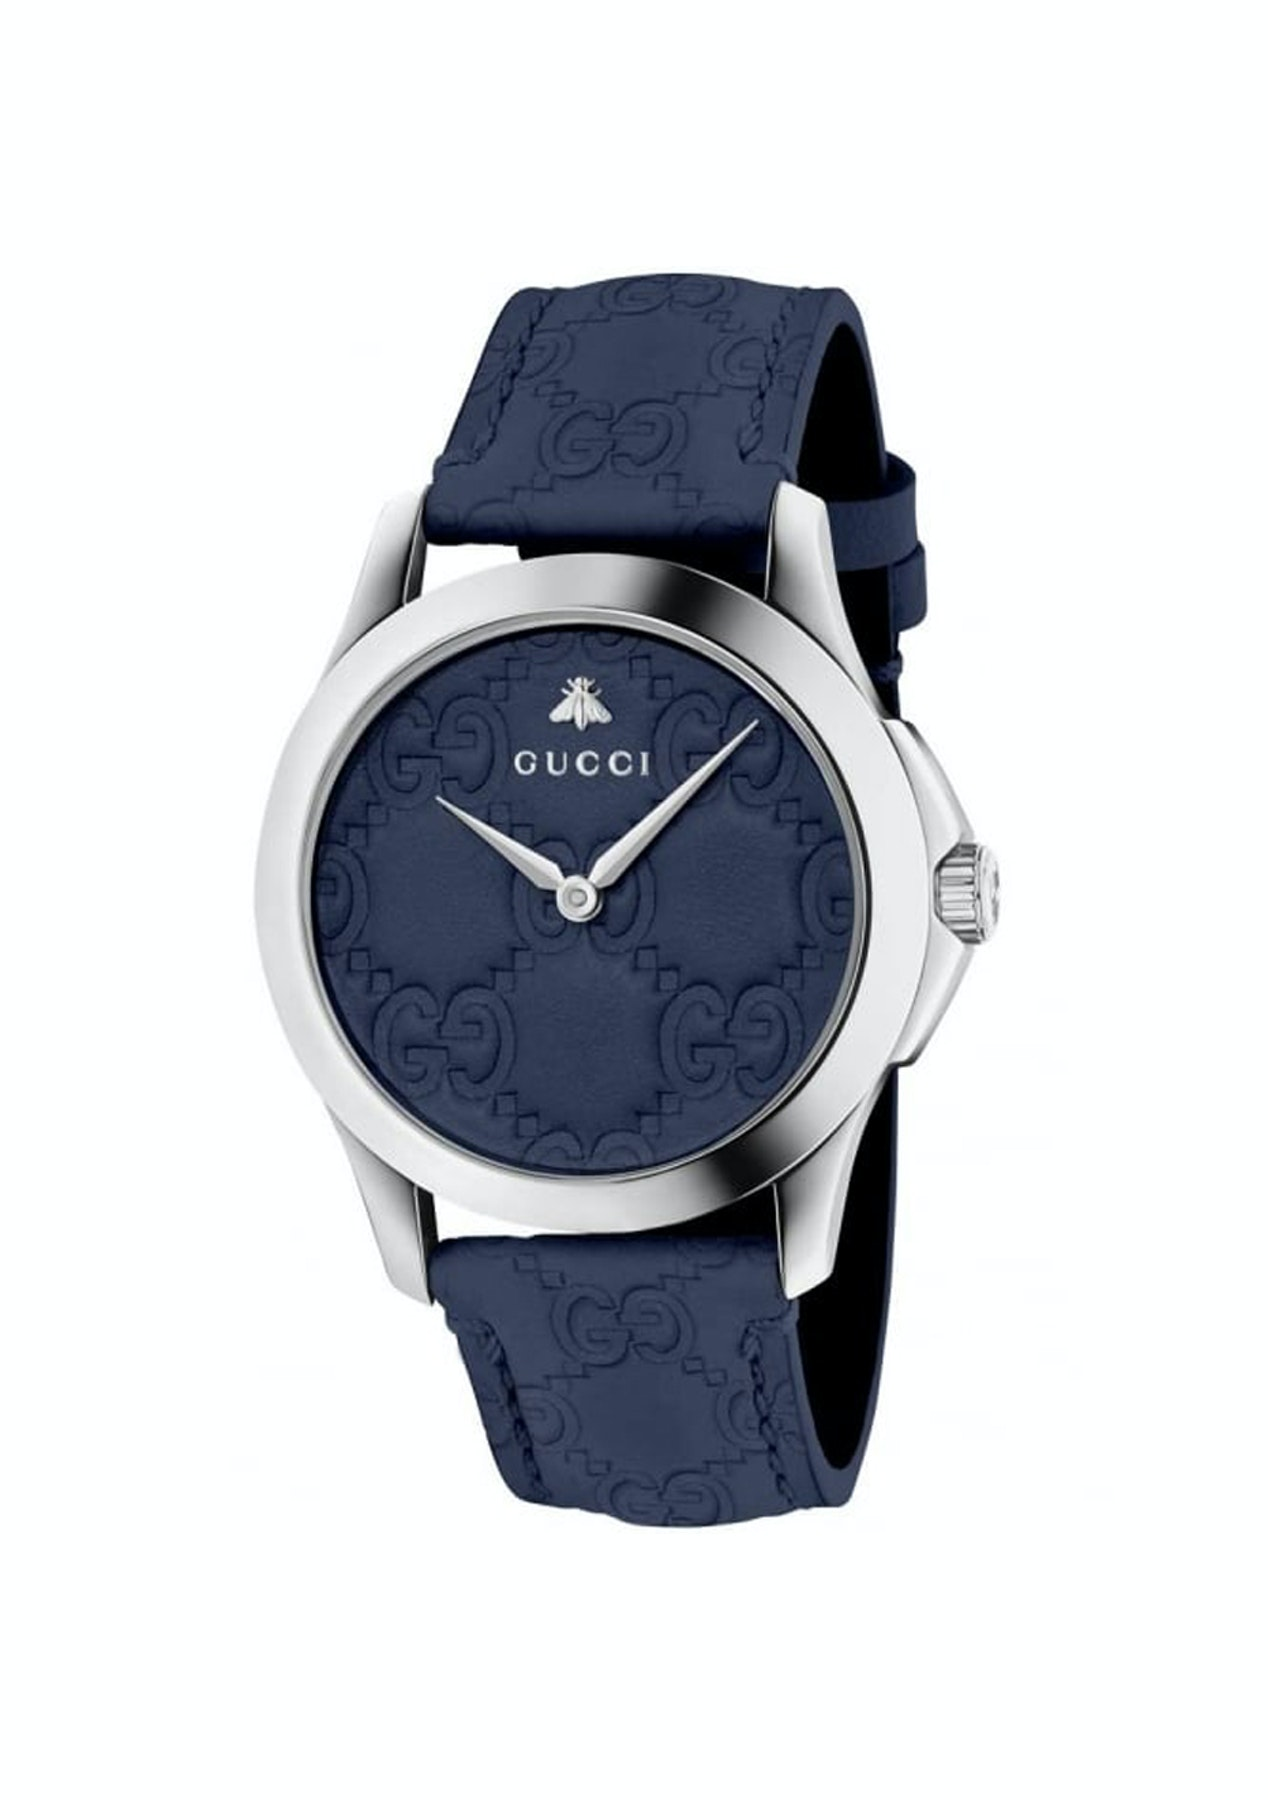 bbb292a0274 Gucci - YA1264032  G-Timeless Blue Dial Watch - 48hour Gucci Watches -  Onceit